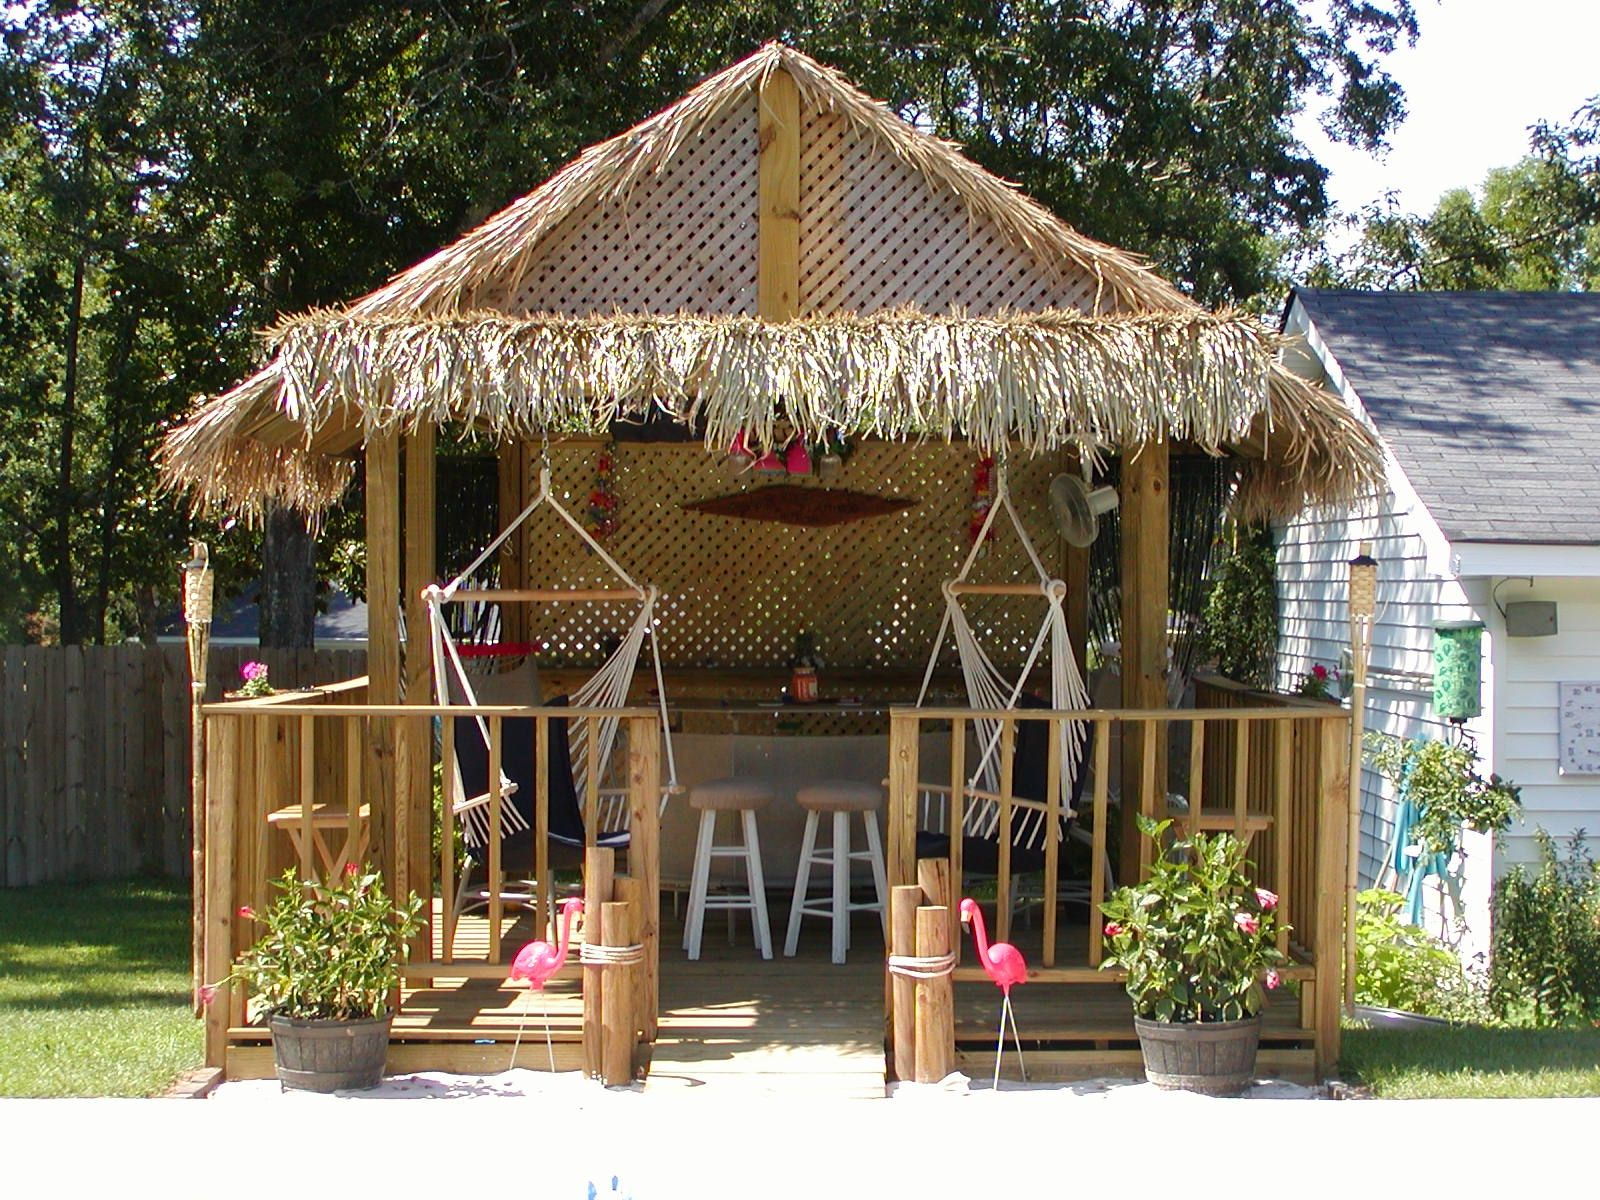 Thatching for diy build your own tiki huts and tiki bars tiki tastic pinterest tiki hut - Bamboo bar design ideas ...